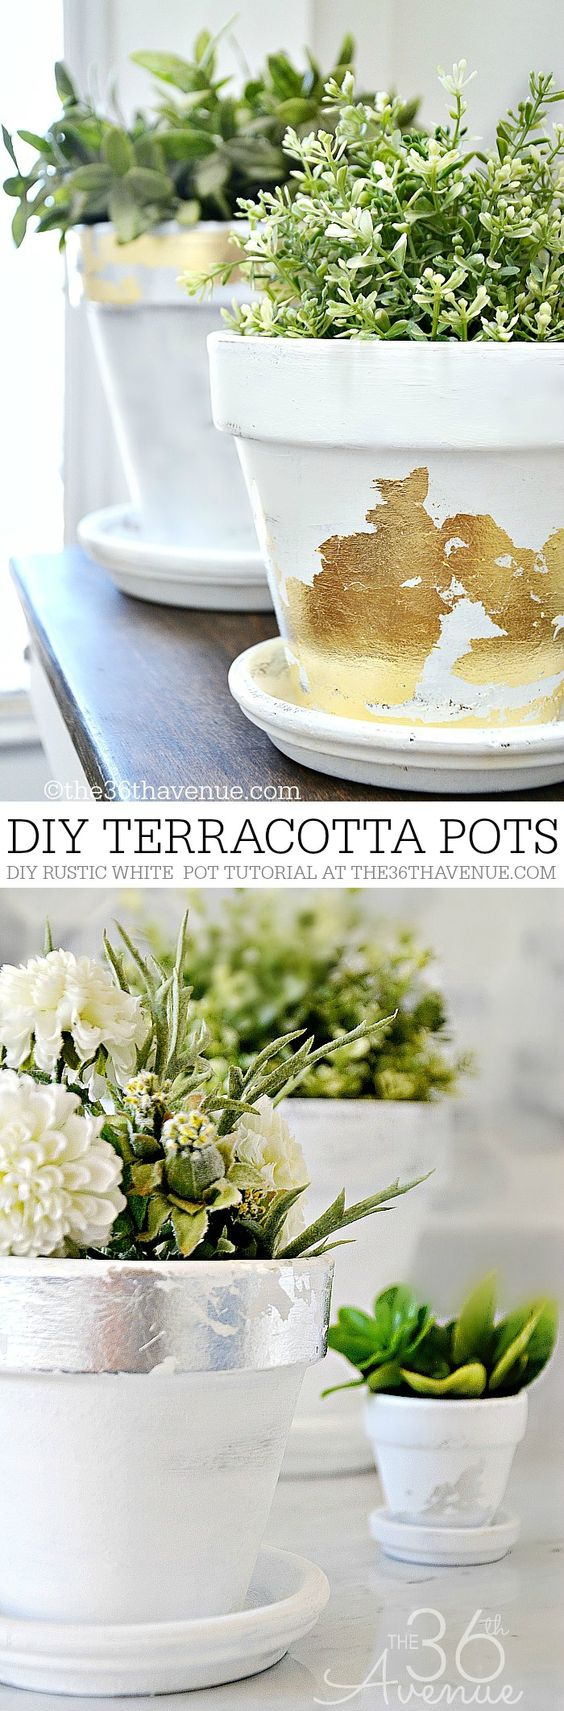 DIY Gold Leaf Terracotta Pots